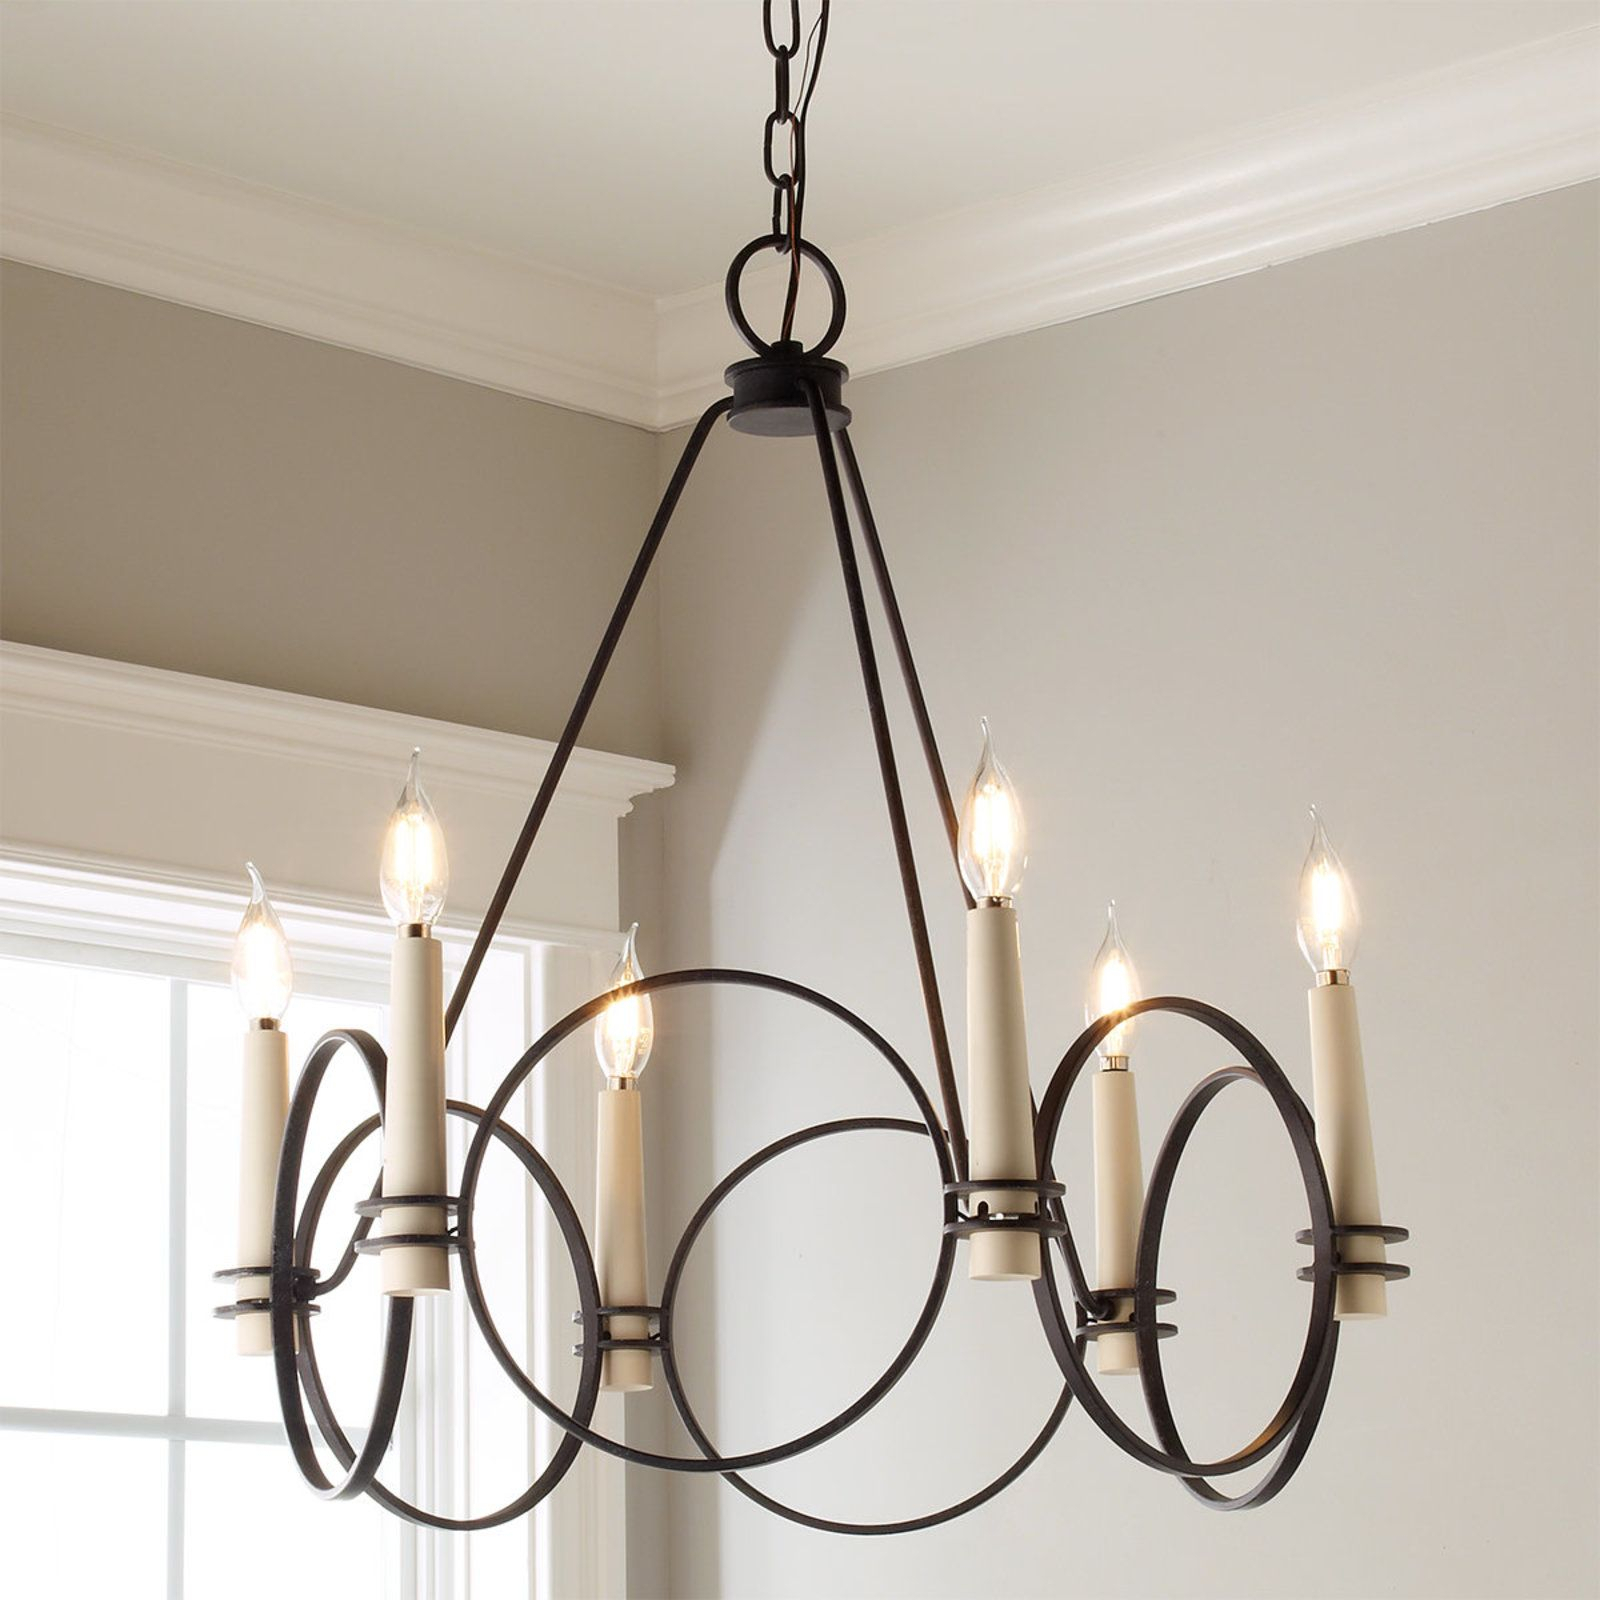 Ring Around Chandelier – 6 Light | Let There Be Light Pertaining To Lynn 6 Light Geometric Chandeliers (Gallery 29 of 30)